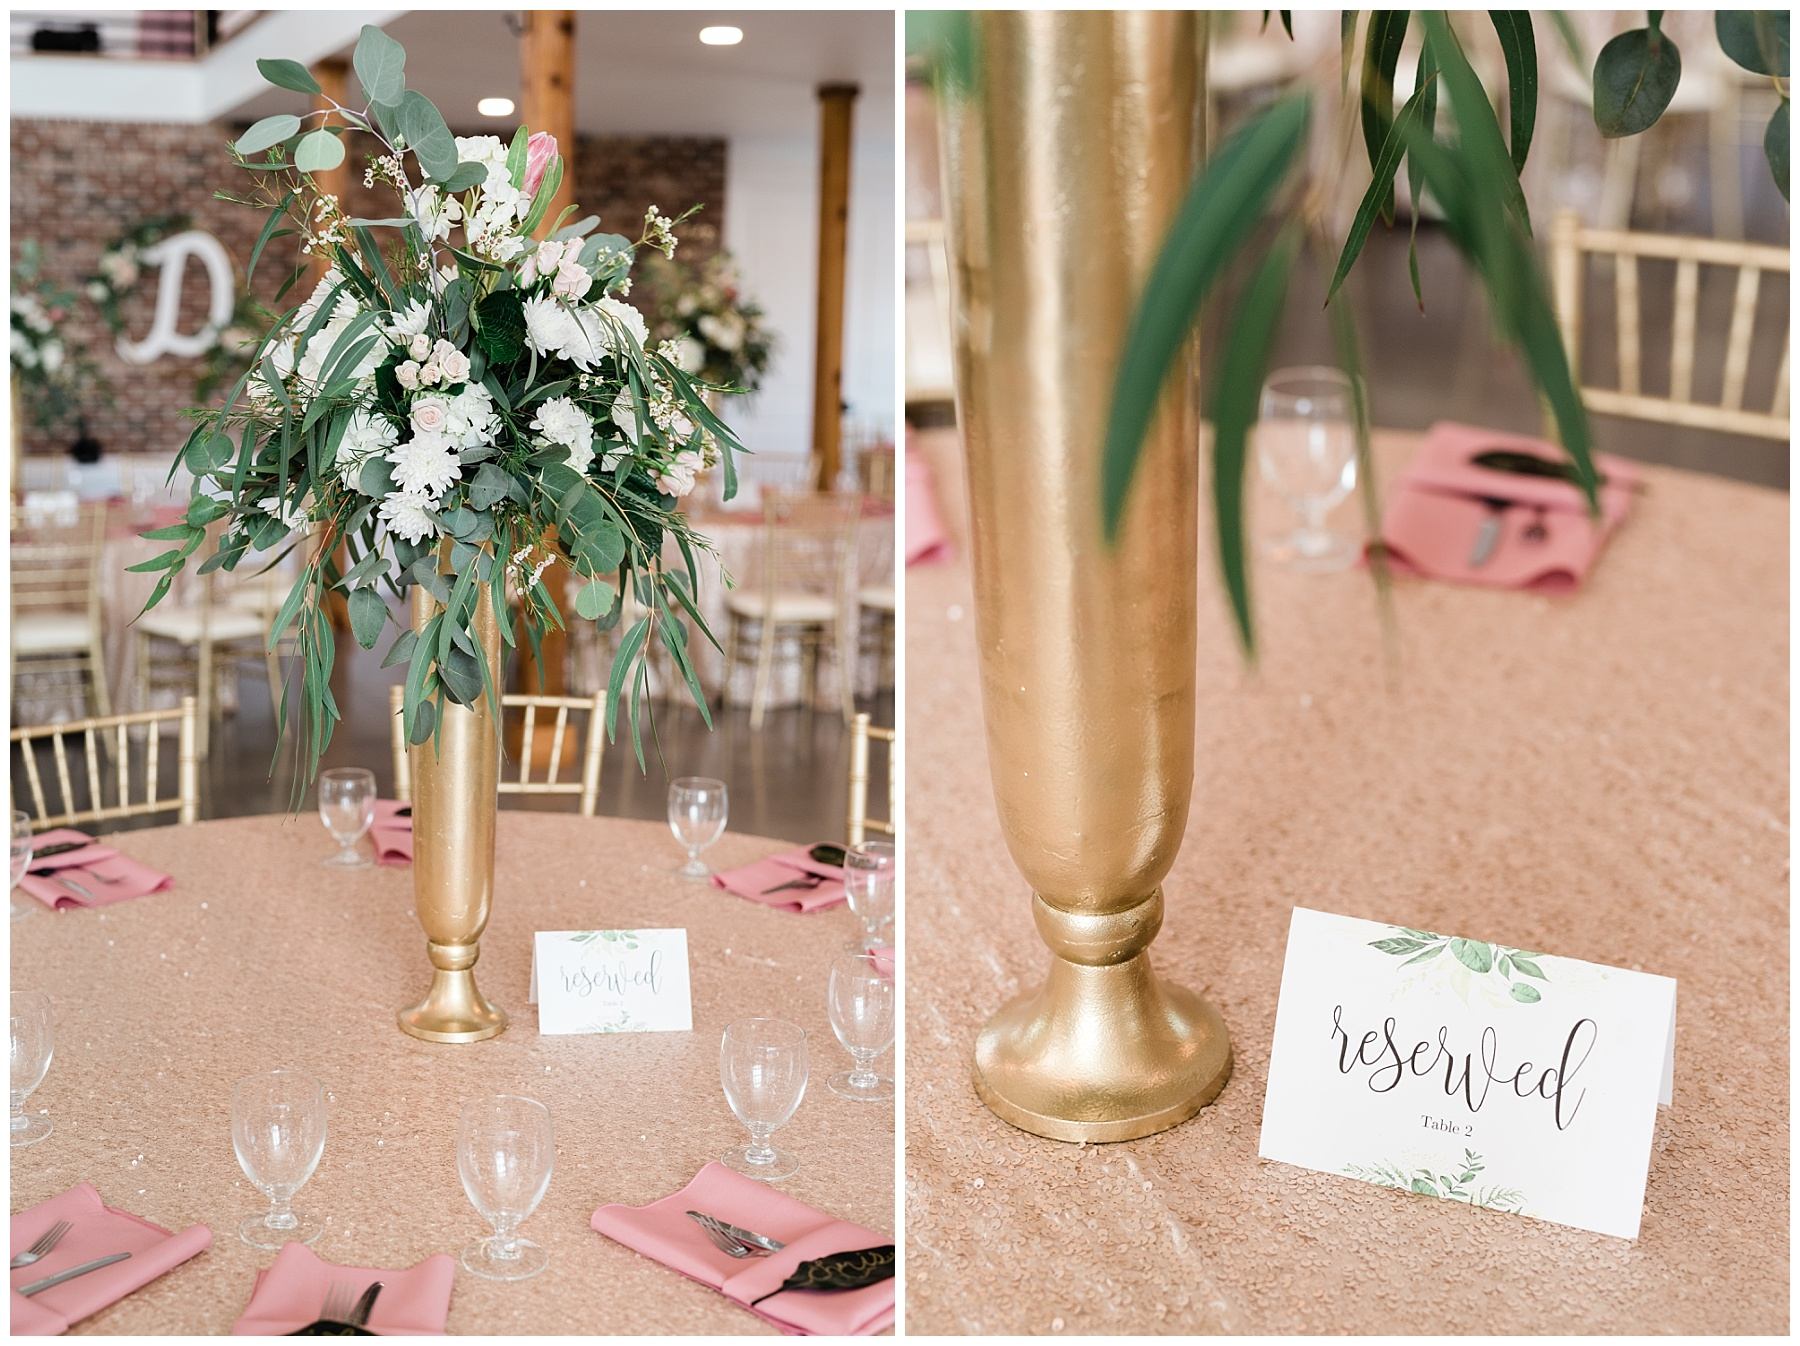 Stunning Heartfelt, Elegant, Fine Art, Chic, Outdoor Spring Wedding with Blush, Cream, Greenery, Rose Gold, and Sequins at Emerson Fields Venue by Kelsi Kliethermes Photography_0004.jpg